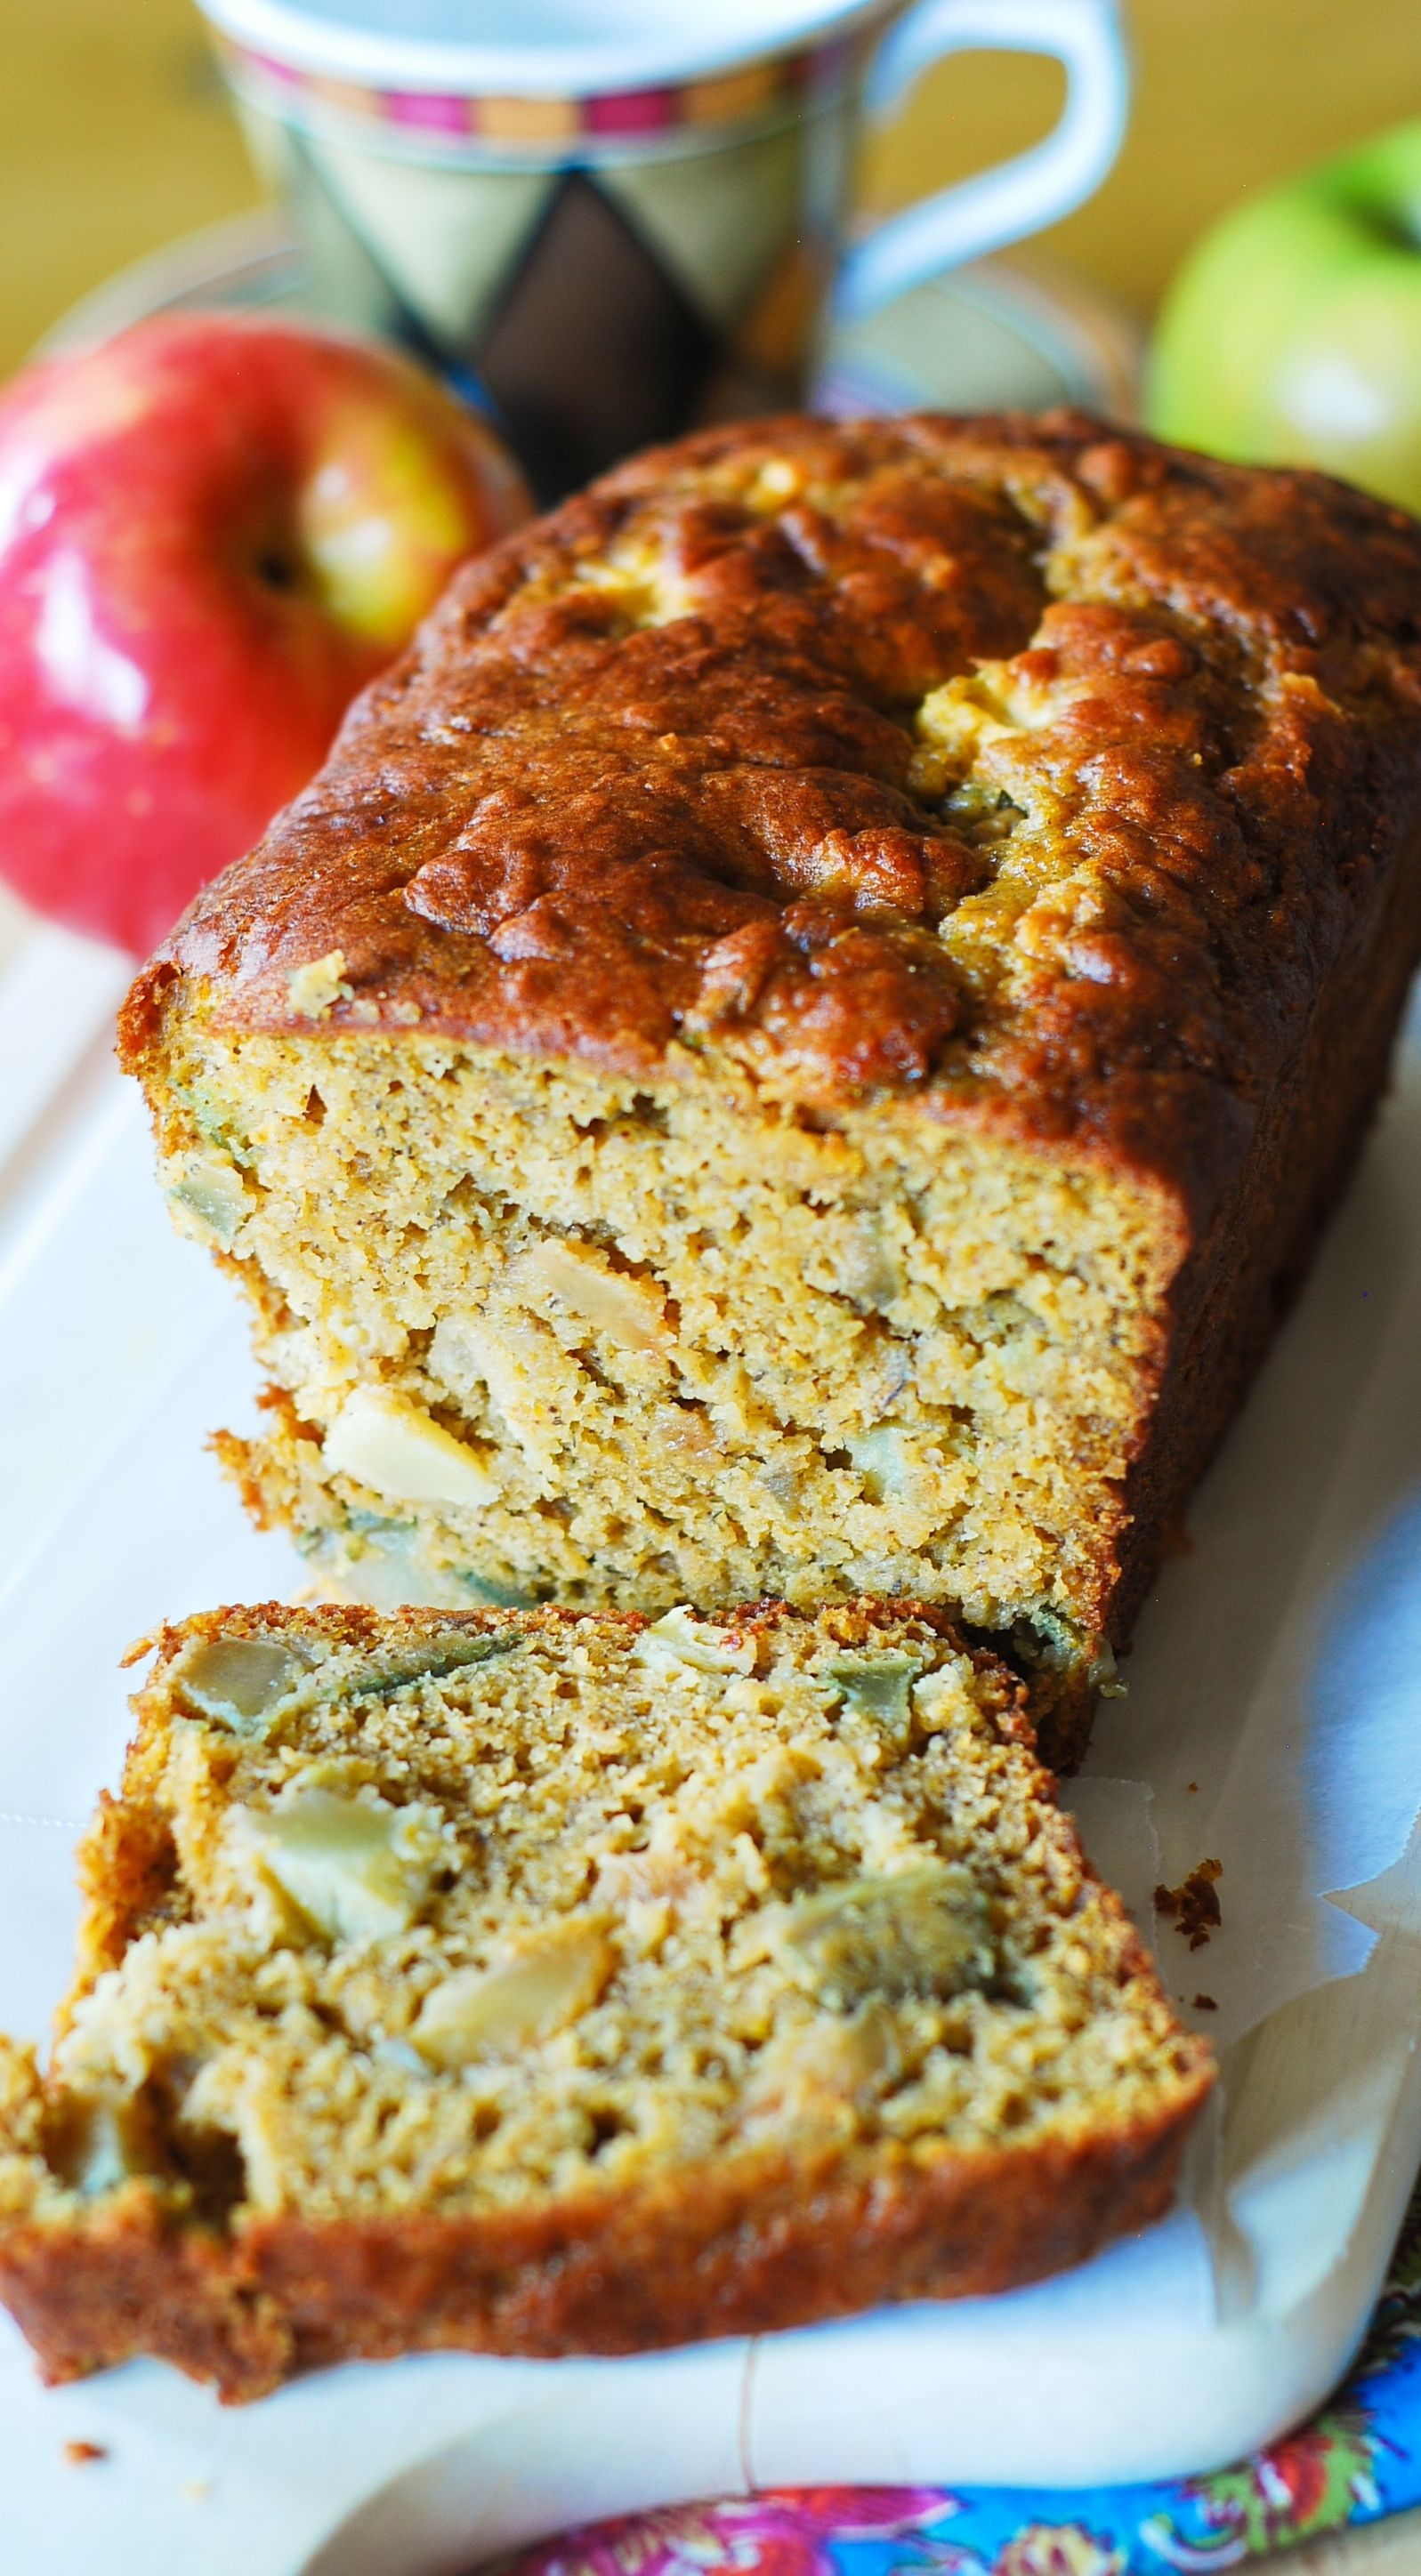 Low-fat pumpkin bread stuffed with apple chunks, flavored with cinnamon and vanilla. Made with ...